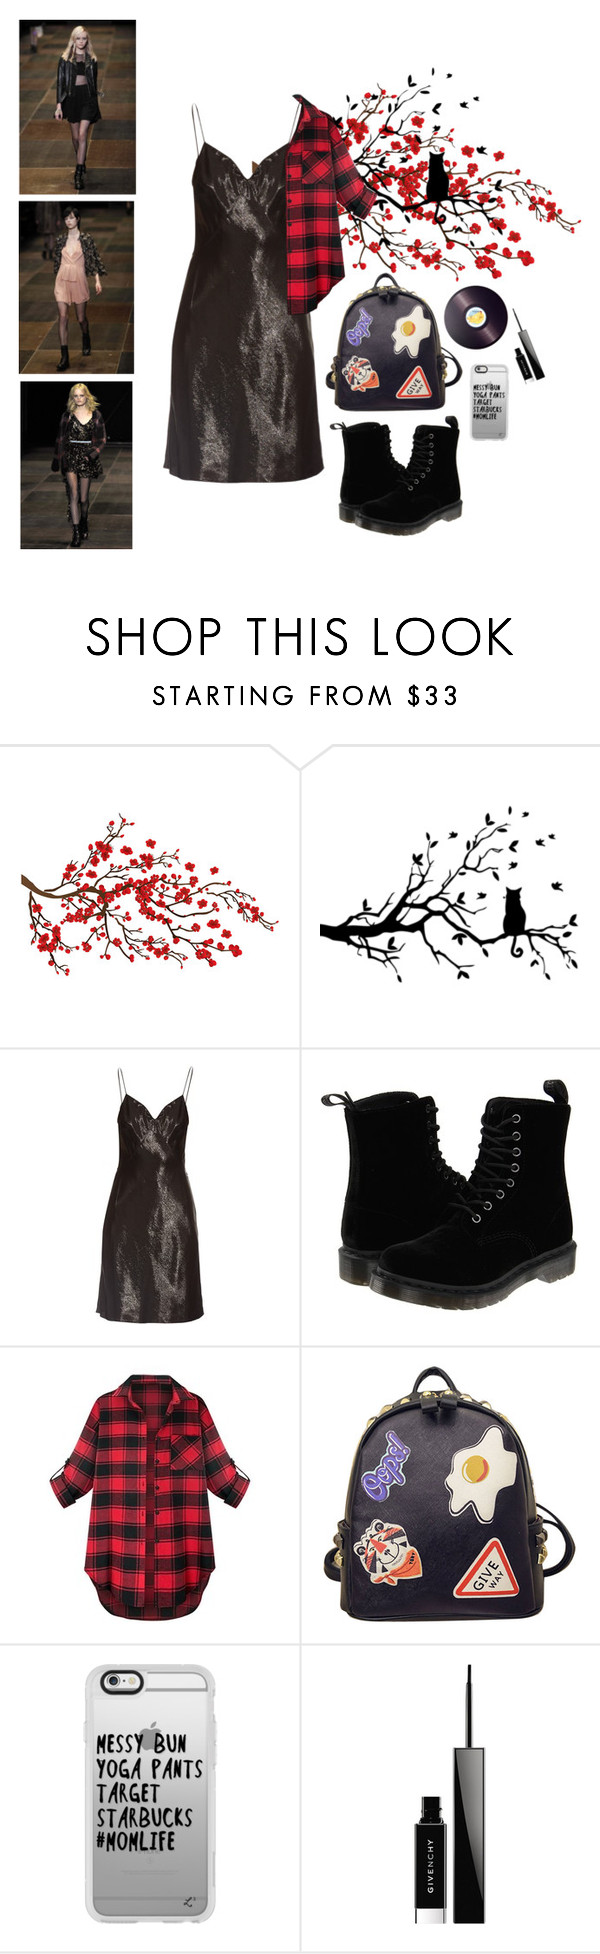 """viva la grunge"" by exclusivelyenchanting ❤ liked on Polyvore featuring Yves Saint Laurent, Dr. Martens, WithChic, Casetify, Givenchy and Joseph Joseph"